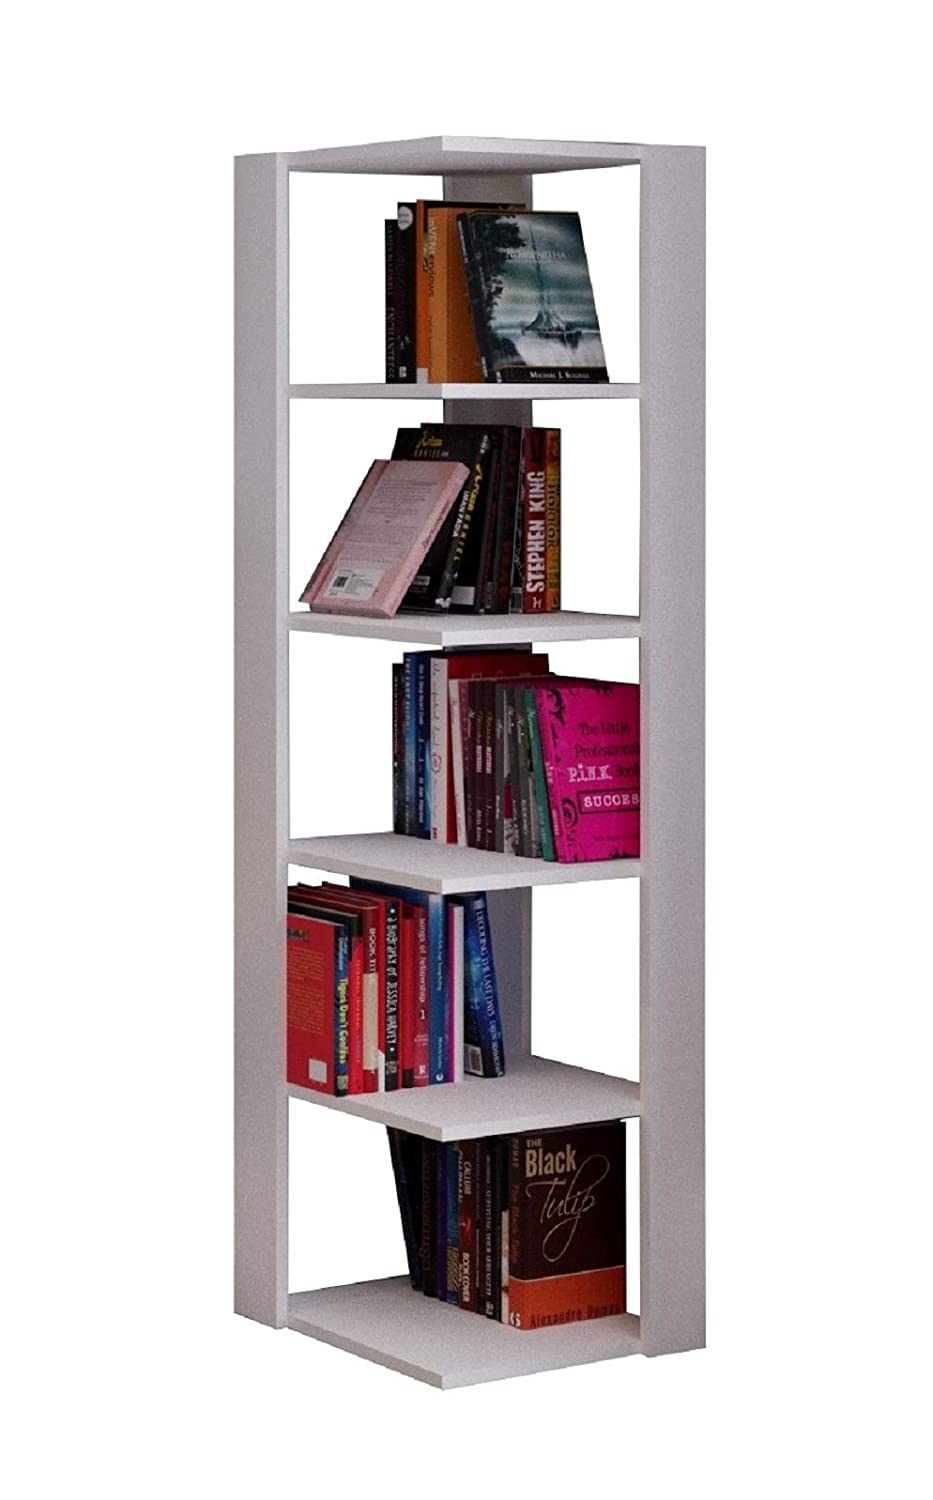 Homidea ANKLE Corner Bookcase - Book Shelf - Free standing Shelving unit for office and living room decoration (White)